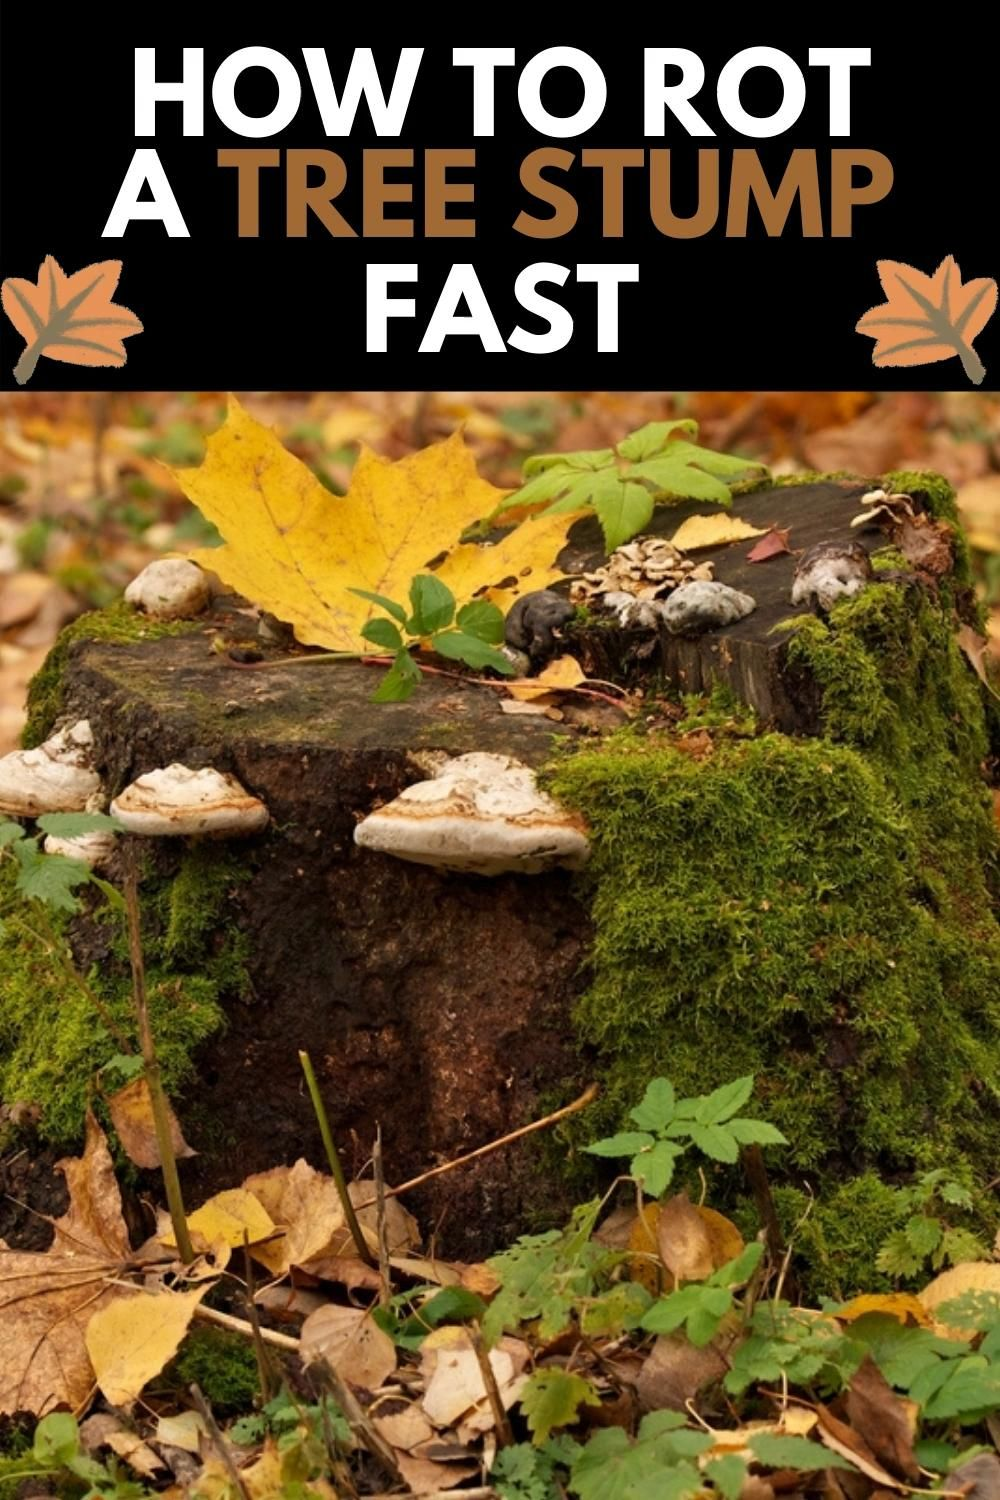 How To Rot A Tree Stump Fast Video In 2020 Small Backyard Landscaping Gardening Supplies Tree Stump